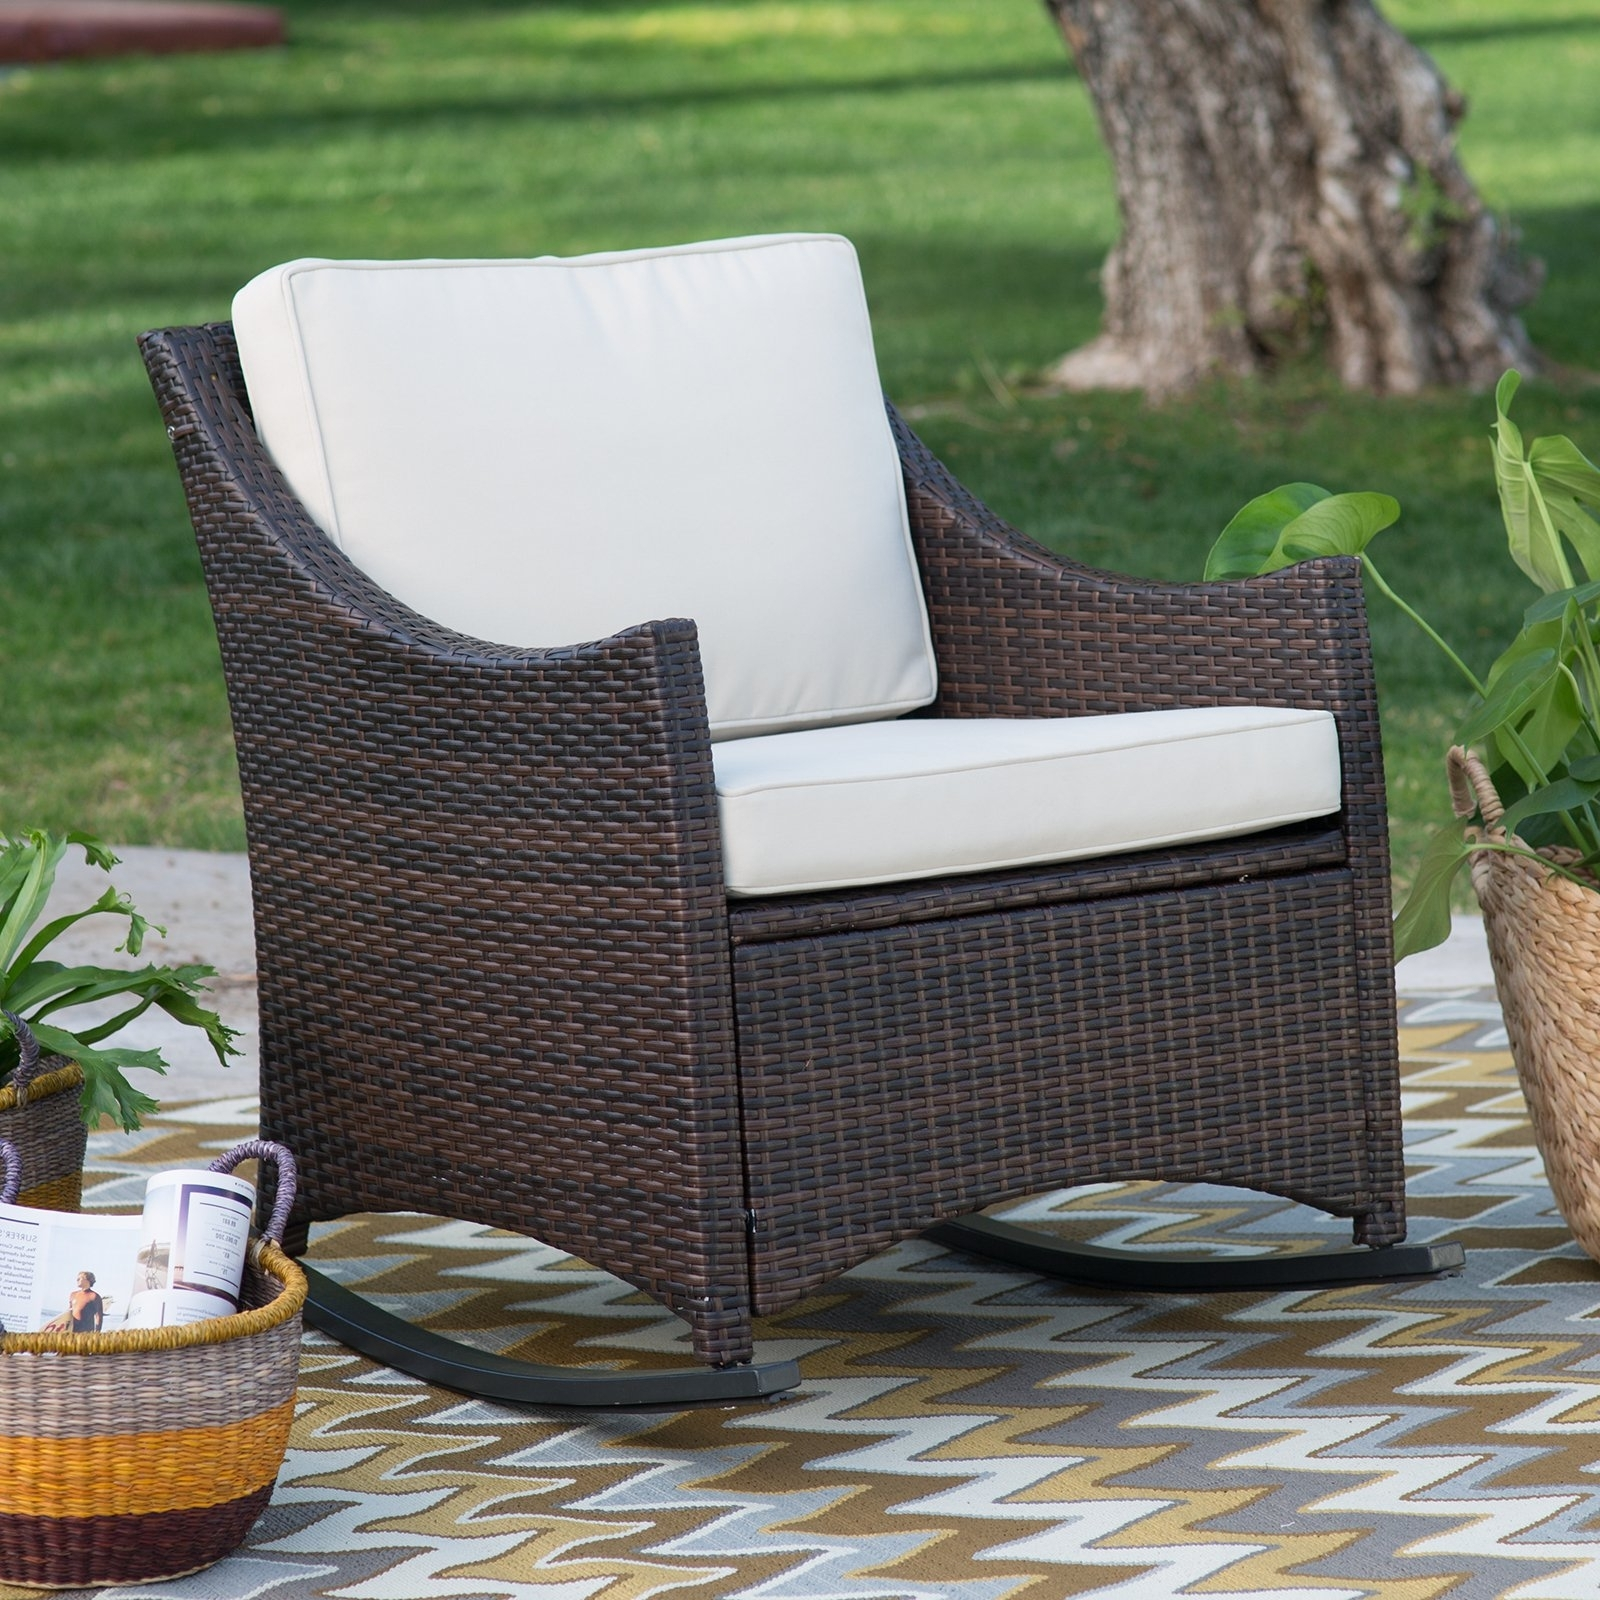 Resin Wicker Patio Rocking Chairs Intended For Widely Used Coral Coast Harrison Club Style Rocking Chair With Cushion – Walmart (View 9 of 15)